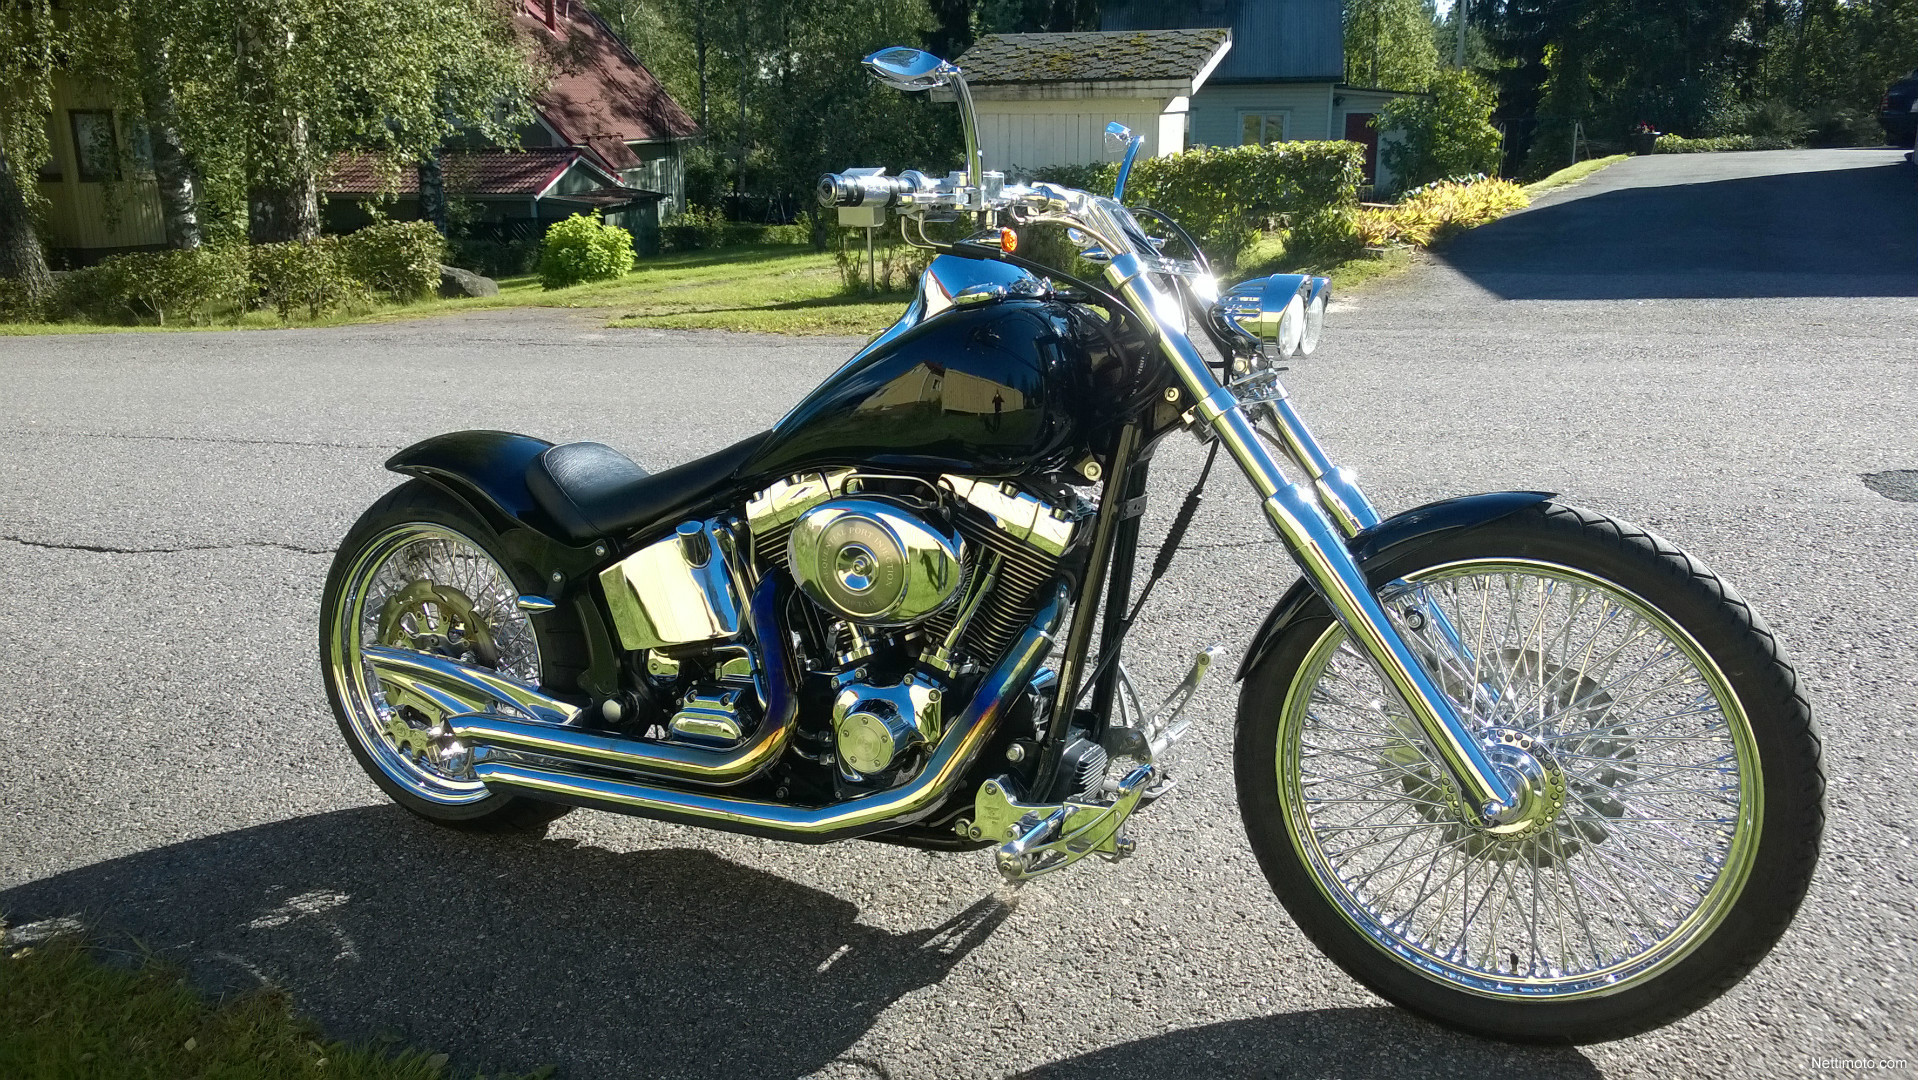 hight resolution of harley davidson fxstd deuce mod upgrade parts to increase performance instant download means there no shipping costs or waiting